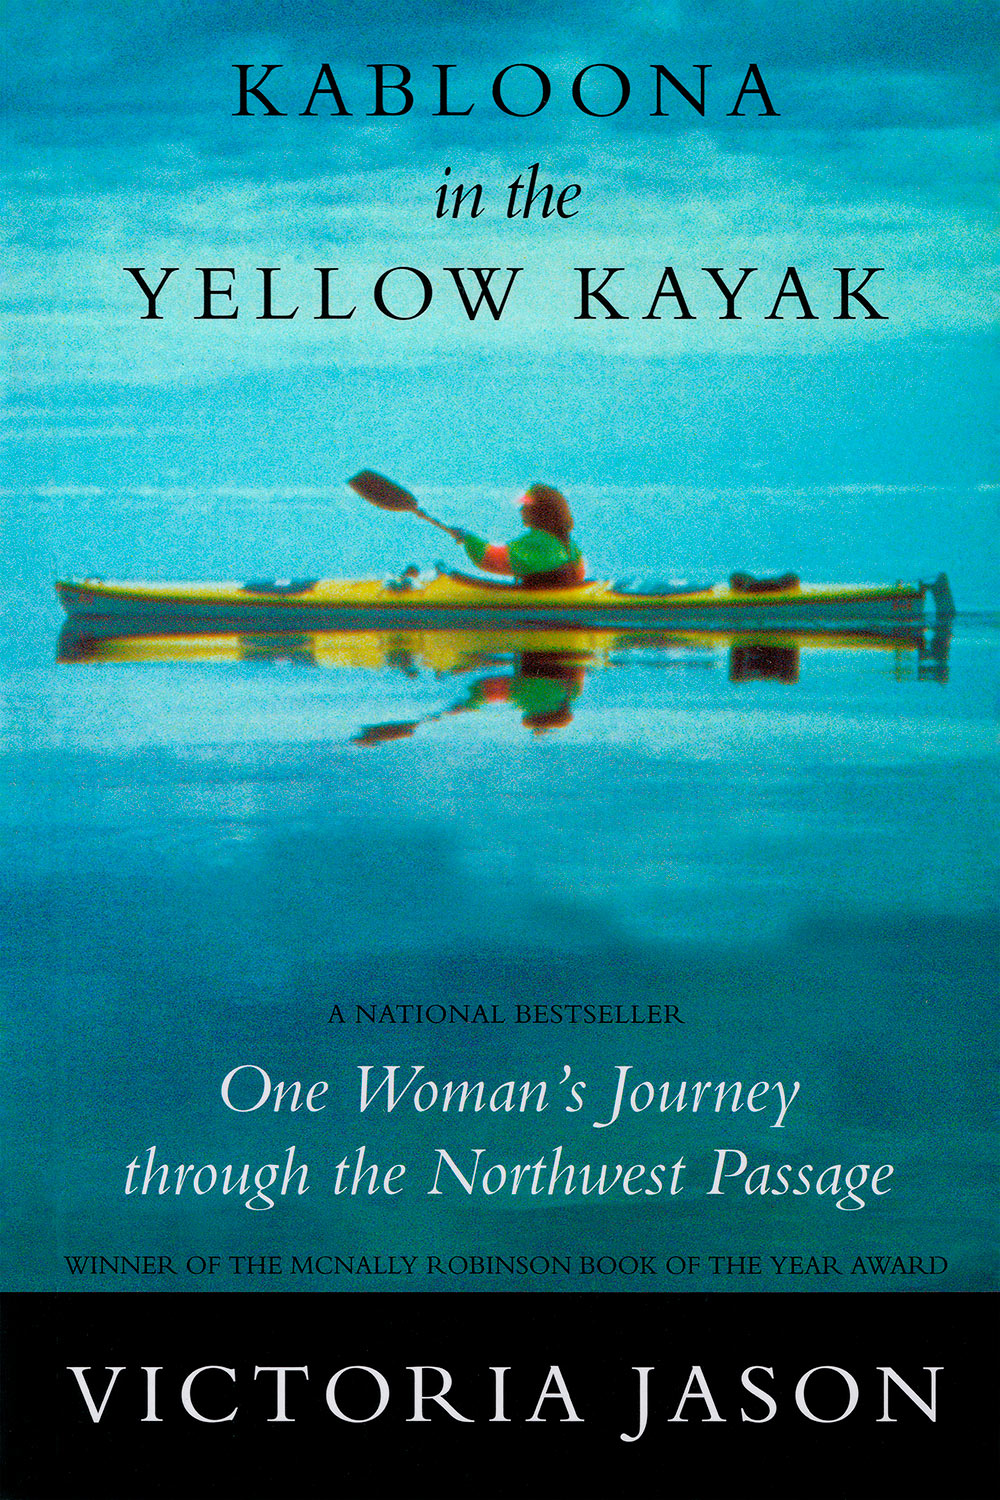 Kabloona and the Yellow Kayak